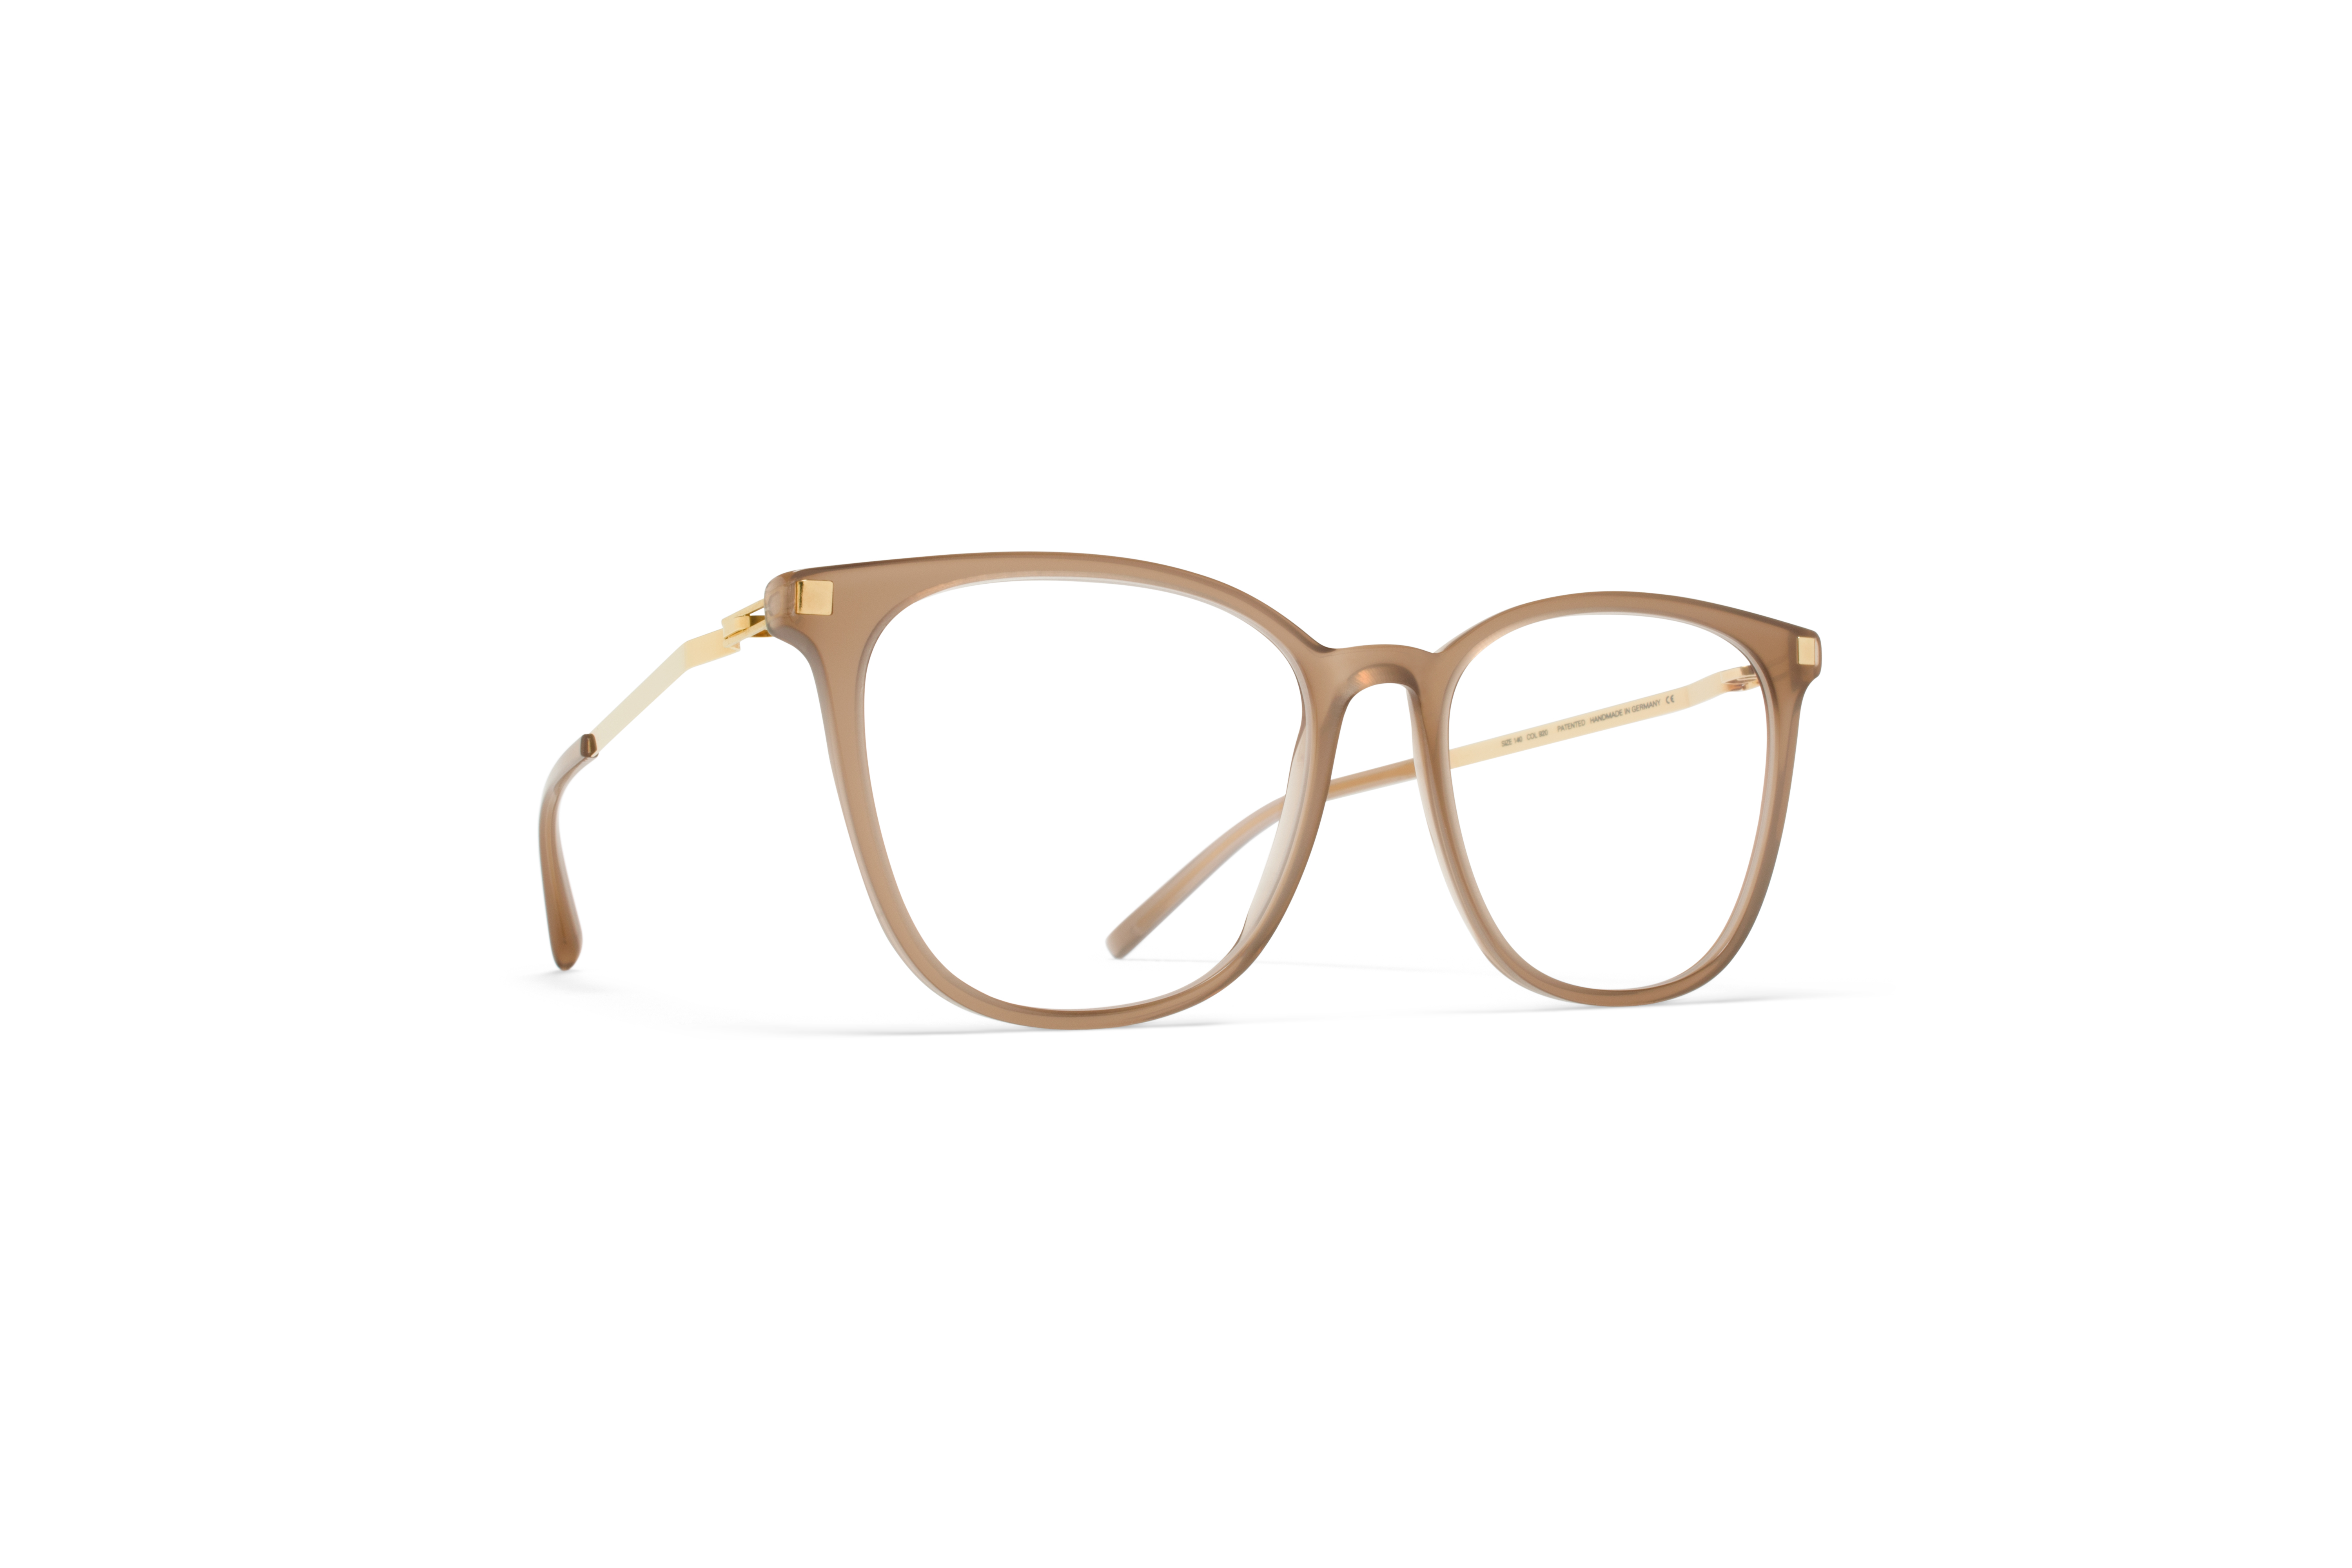 MYKITA Lite Acetate Rx Zima C7 Taupe Glossygold Cl5808ad86d04c3